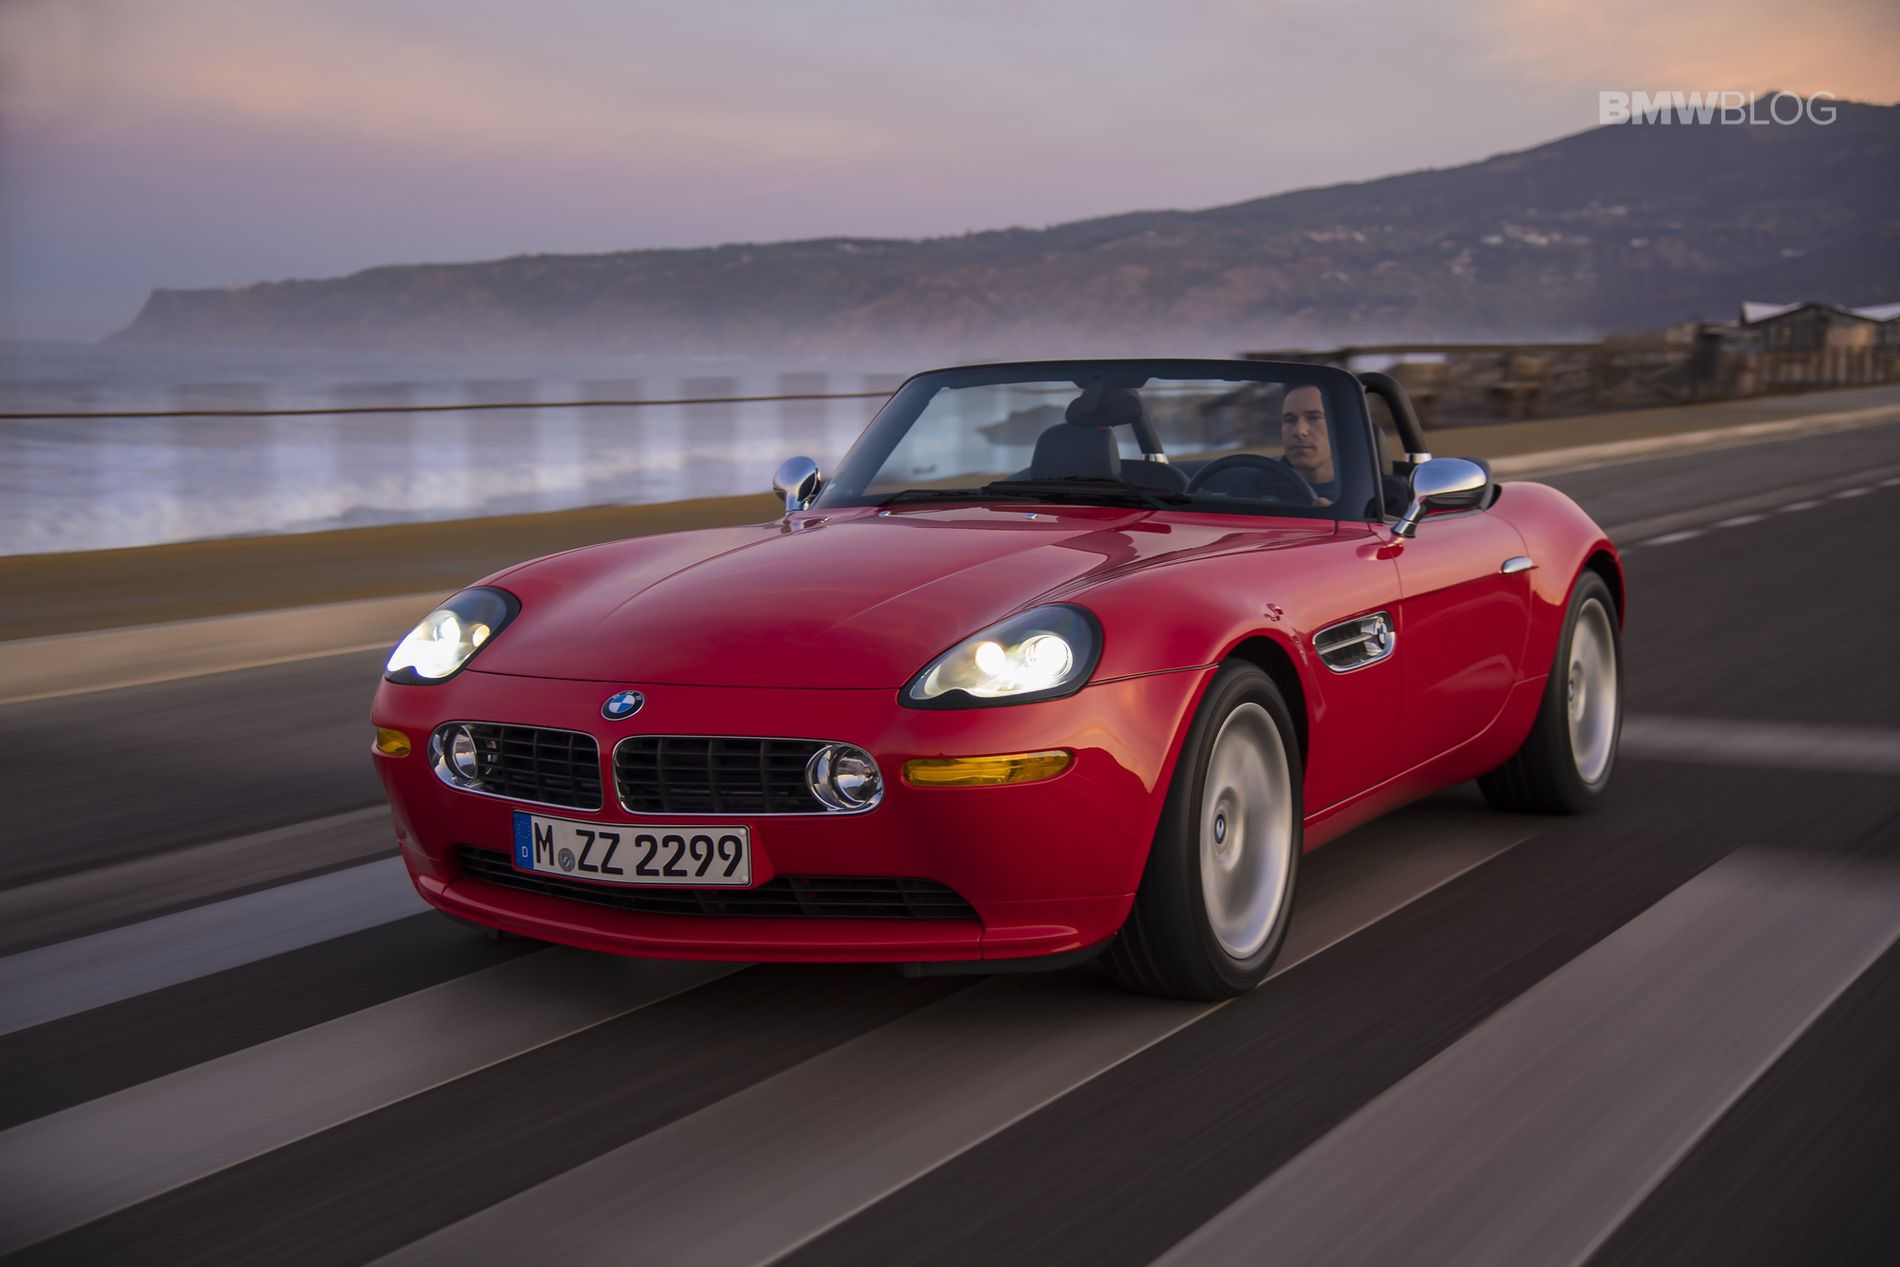 Bmw Z8 Review Top Gear Bmw Z8 Roadster Stunning Photo